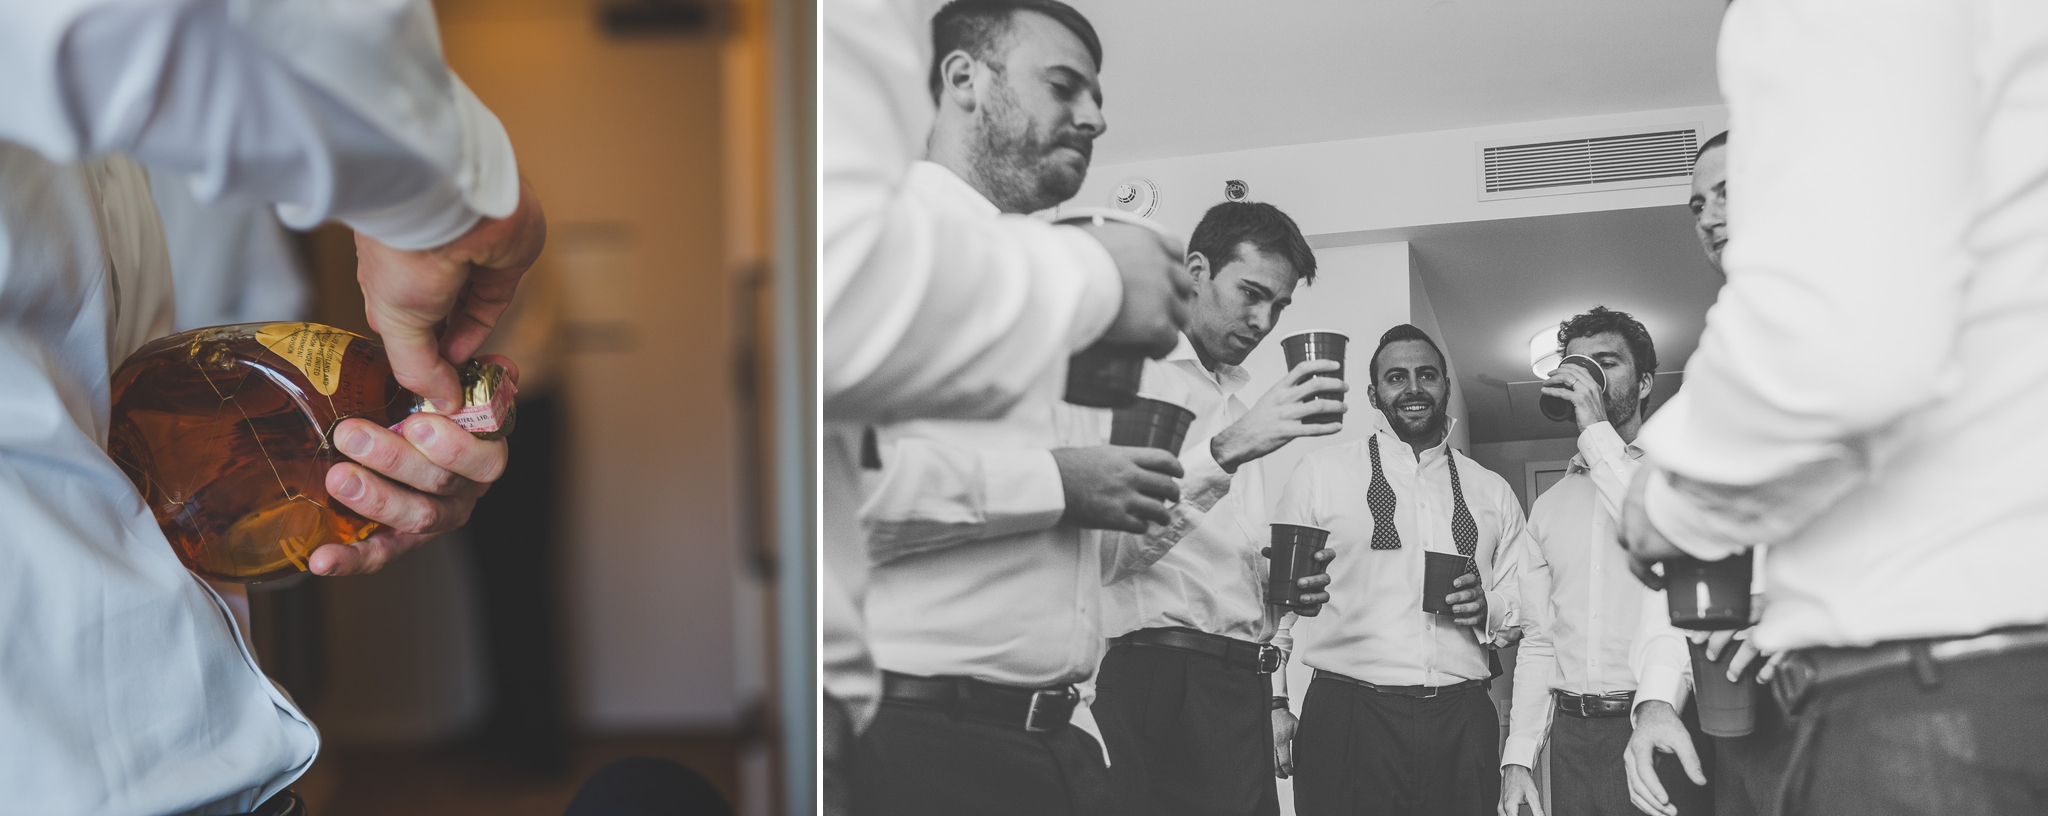 Downtown Toronto wedding, Toronto Wedding, Toronto Wedding Photographer, Downtown Toronto, Toronto Photographer, Berkeley Church, Berkeley Events, Berkeley fieldhouse, Groom, Groom getting ready, bowtie, cigar, groomsmen, drinking, groomsmen getting ready, alcohol, drinks, shots, whisky